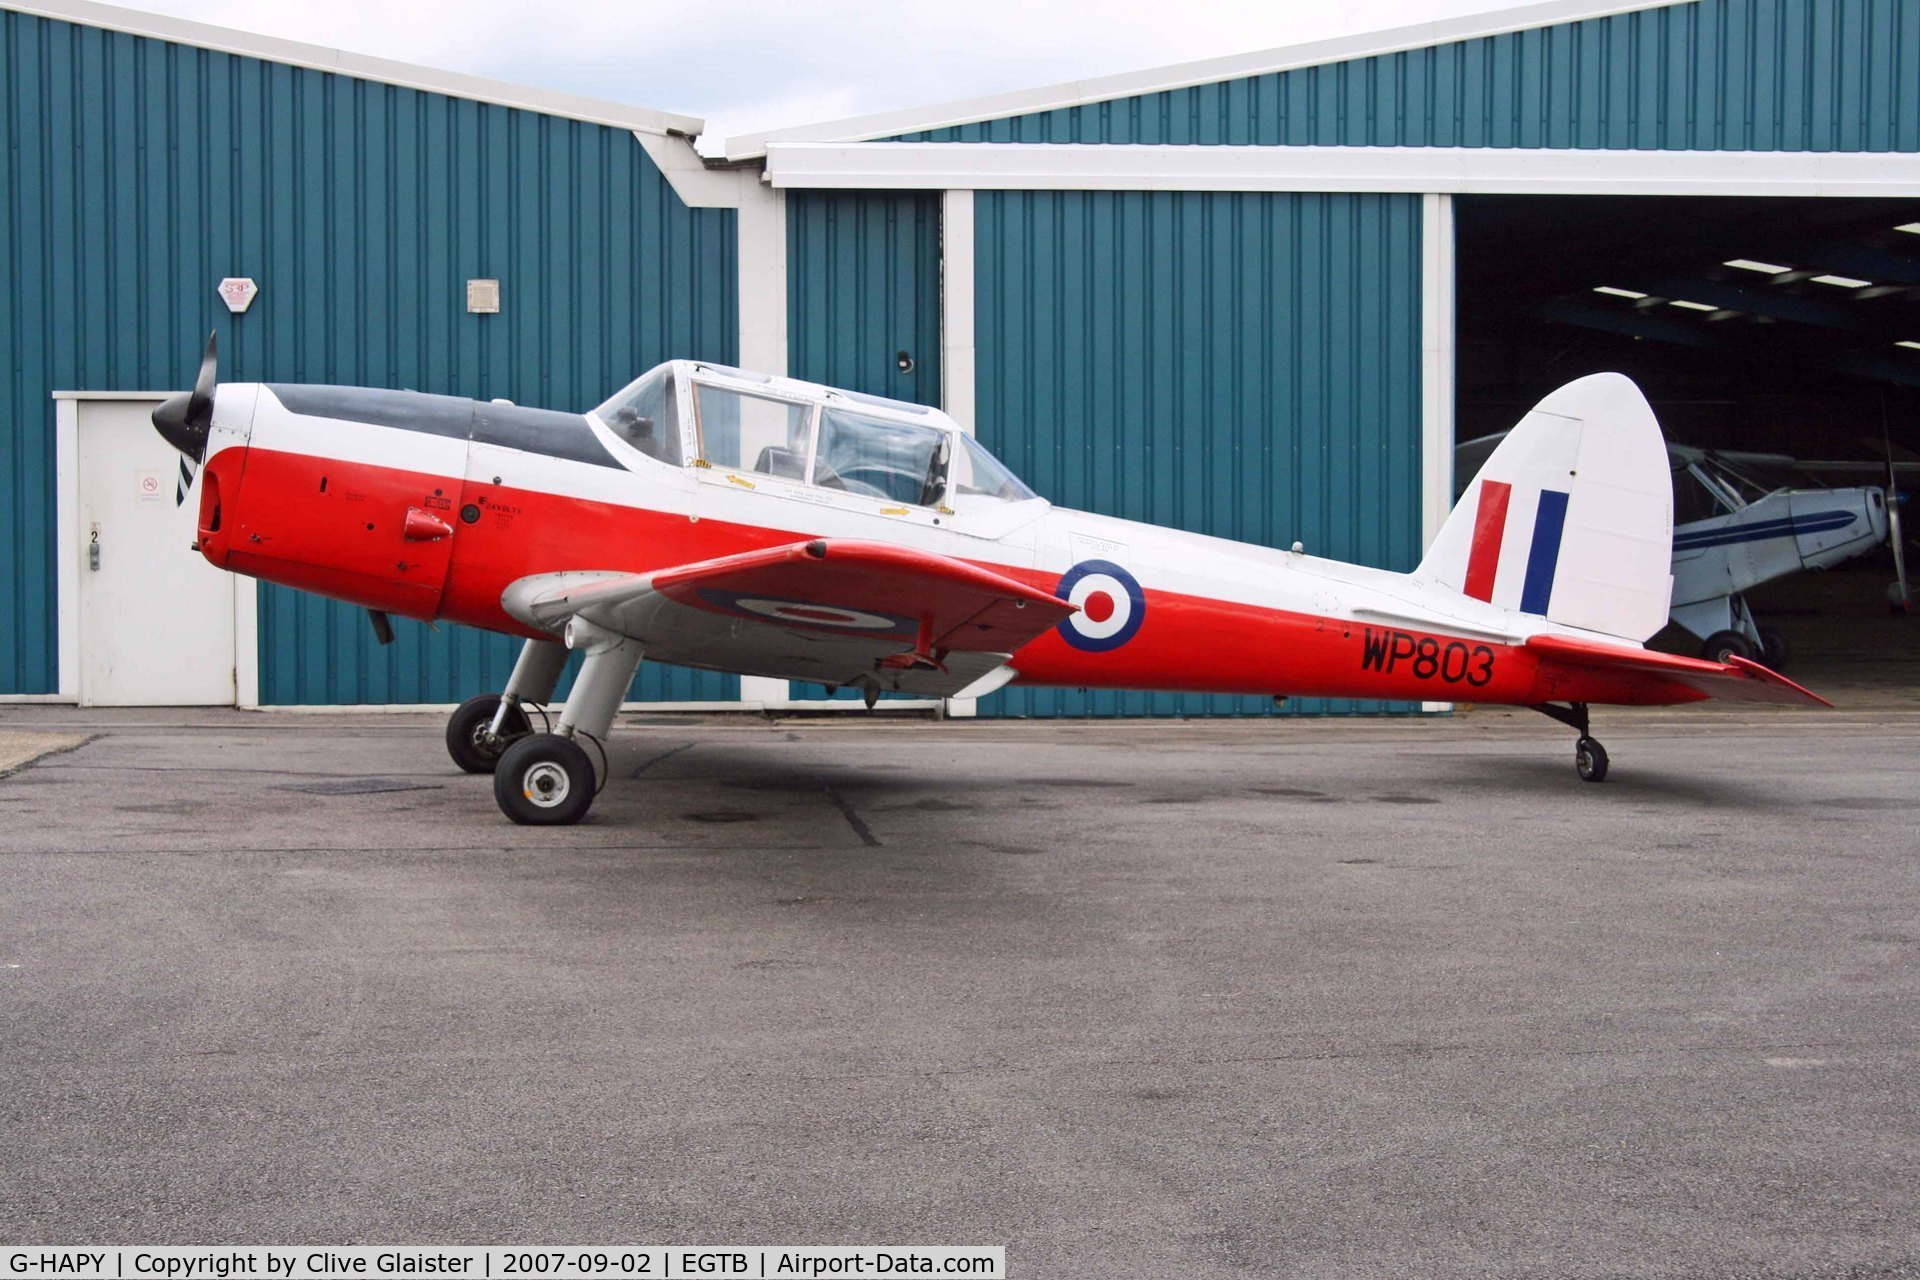 G-HAPY, 1952 De Havilland DHC-1 Chipmunk T.10 C/N C1/0697, Colour scheme of the ROYAL AIR FORCE - Serial No: WP803 - Registered Owner: ASTROJET LTD